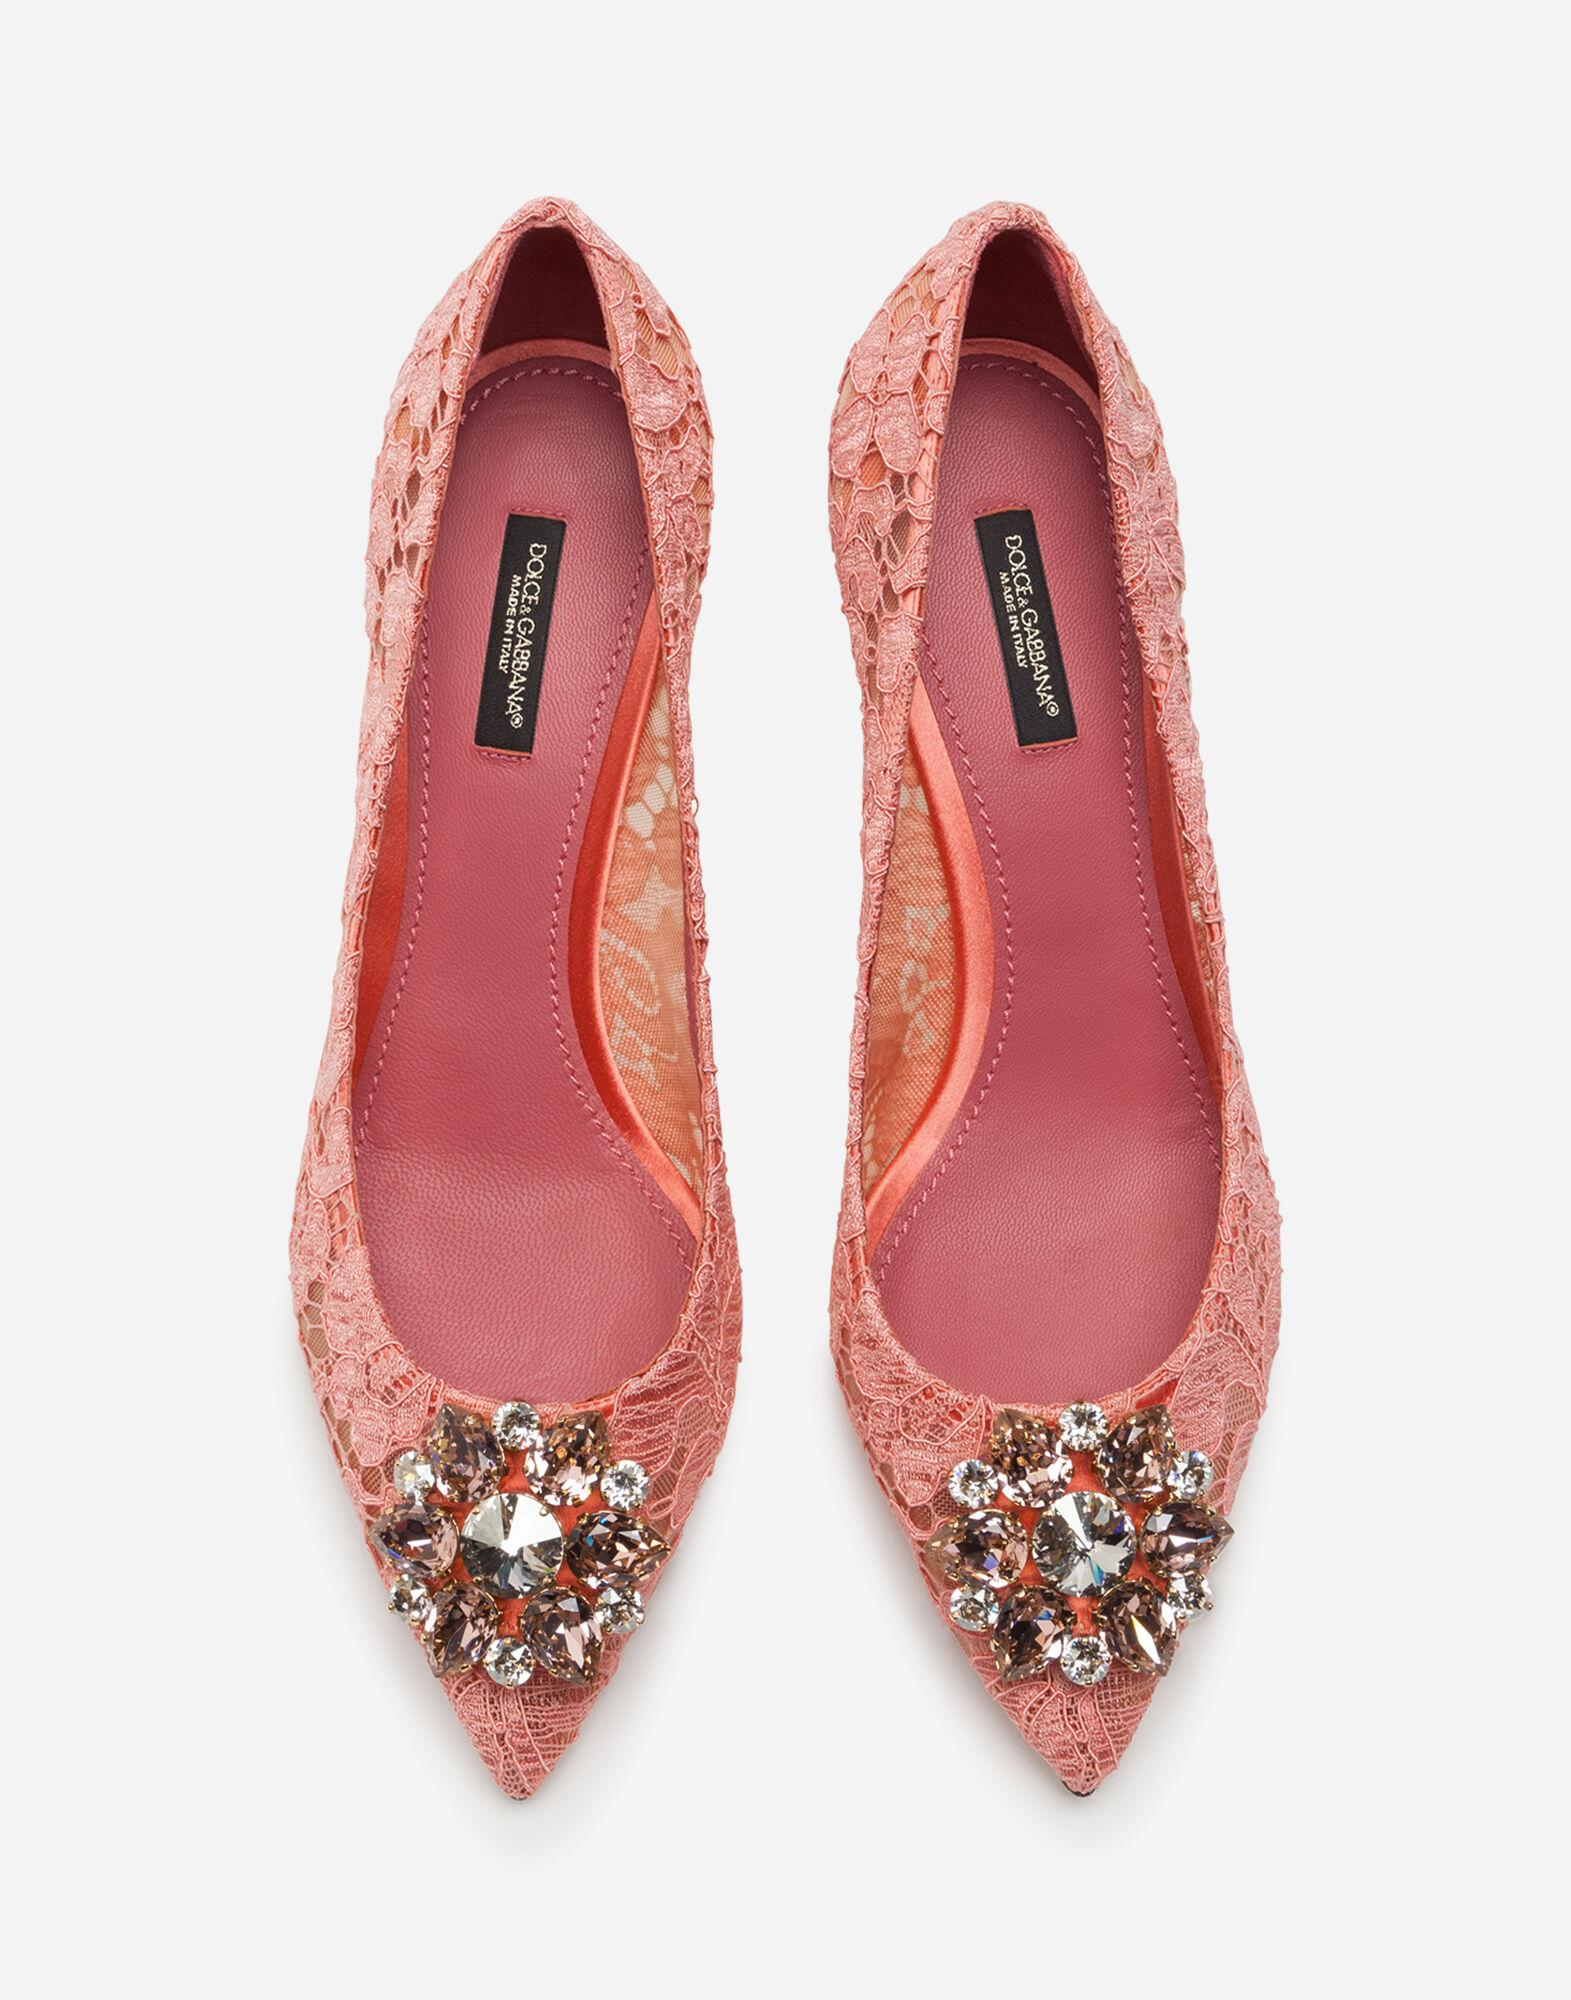 Taormina lace pumps with crystals 3